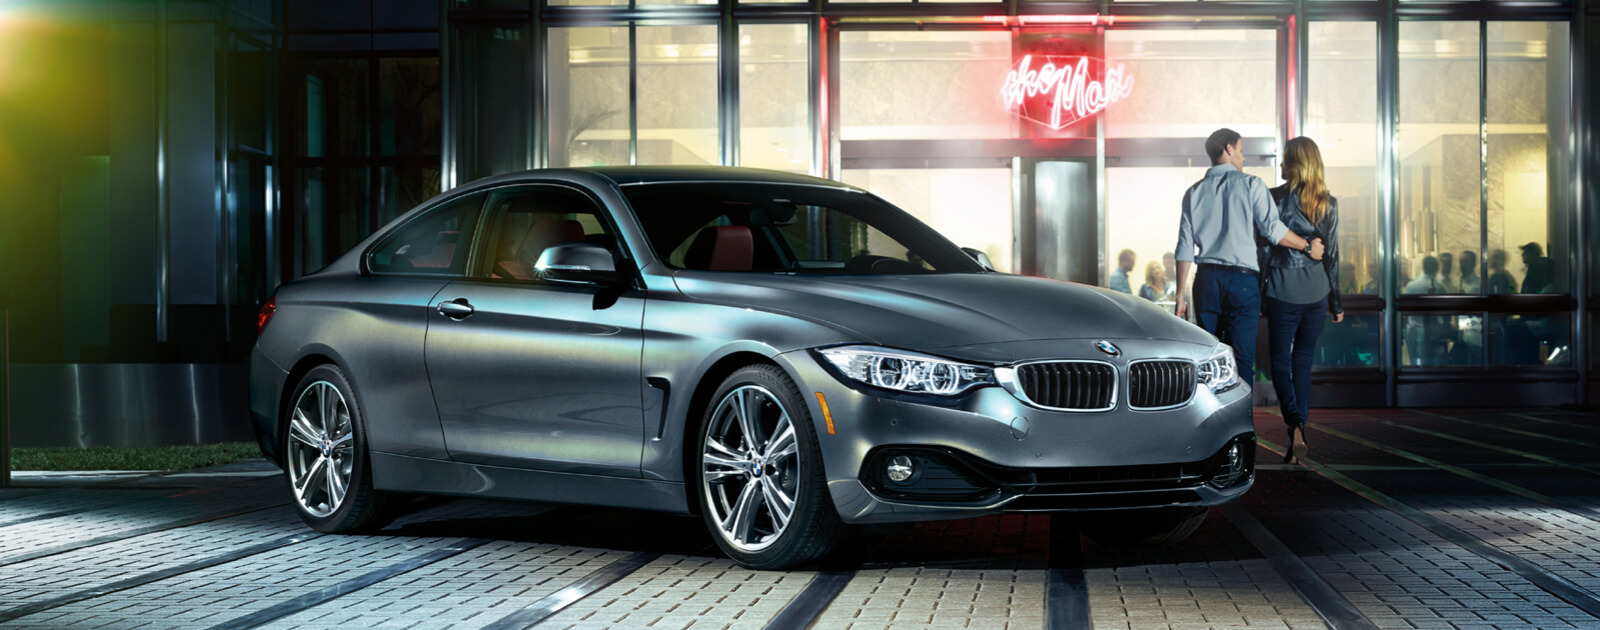 Bay Area BMW 4 Series